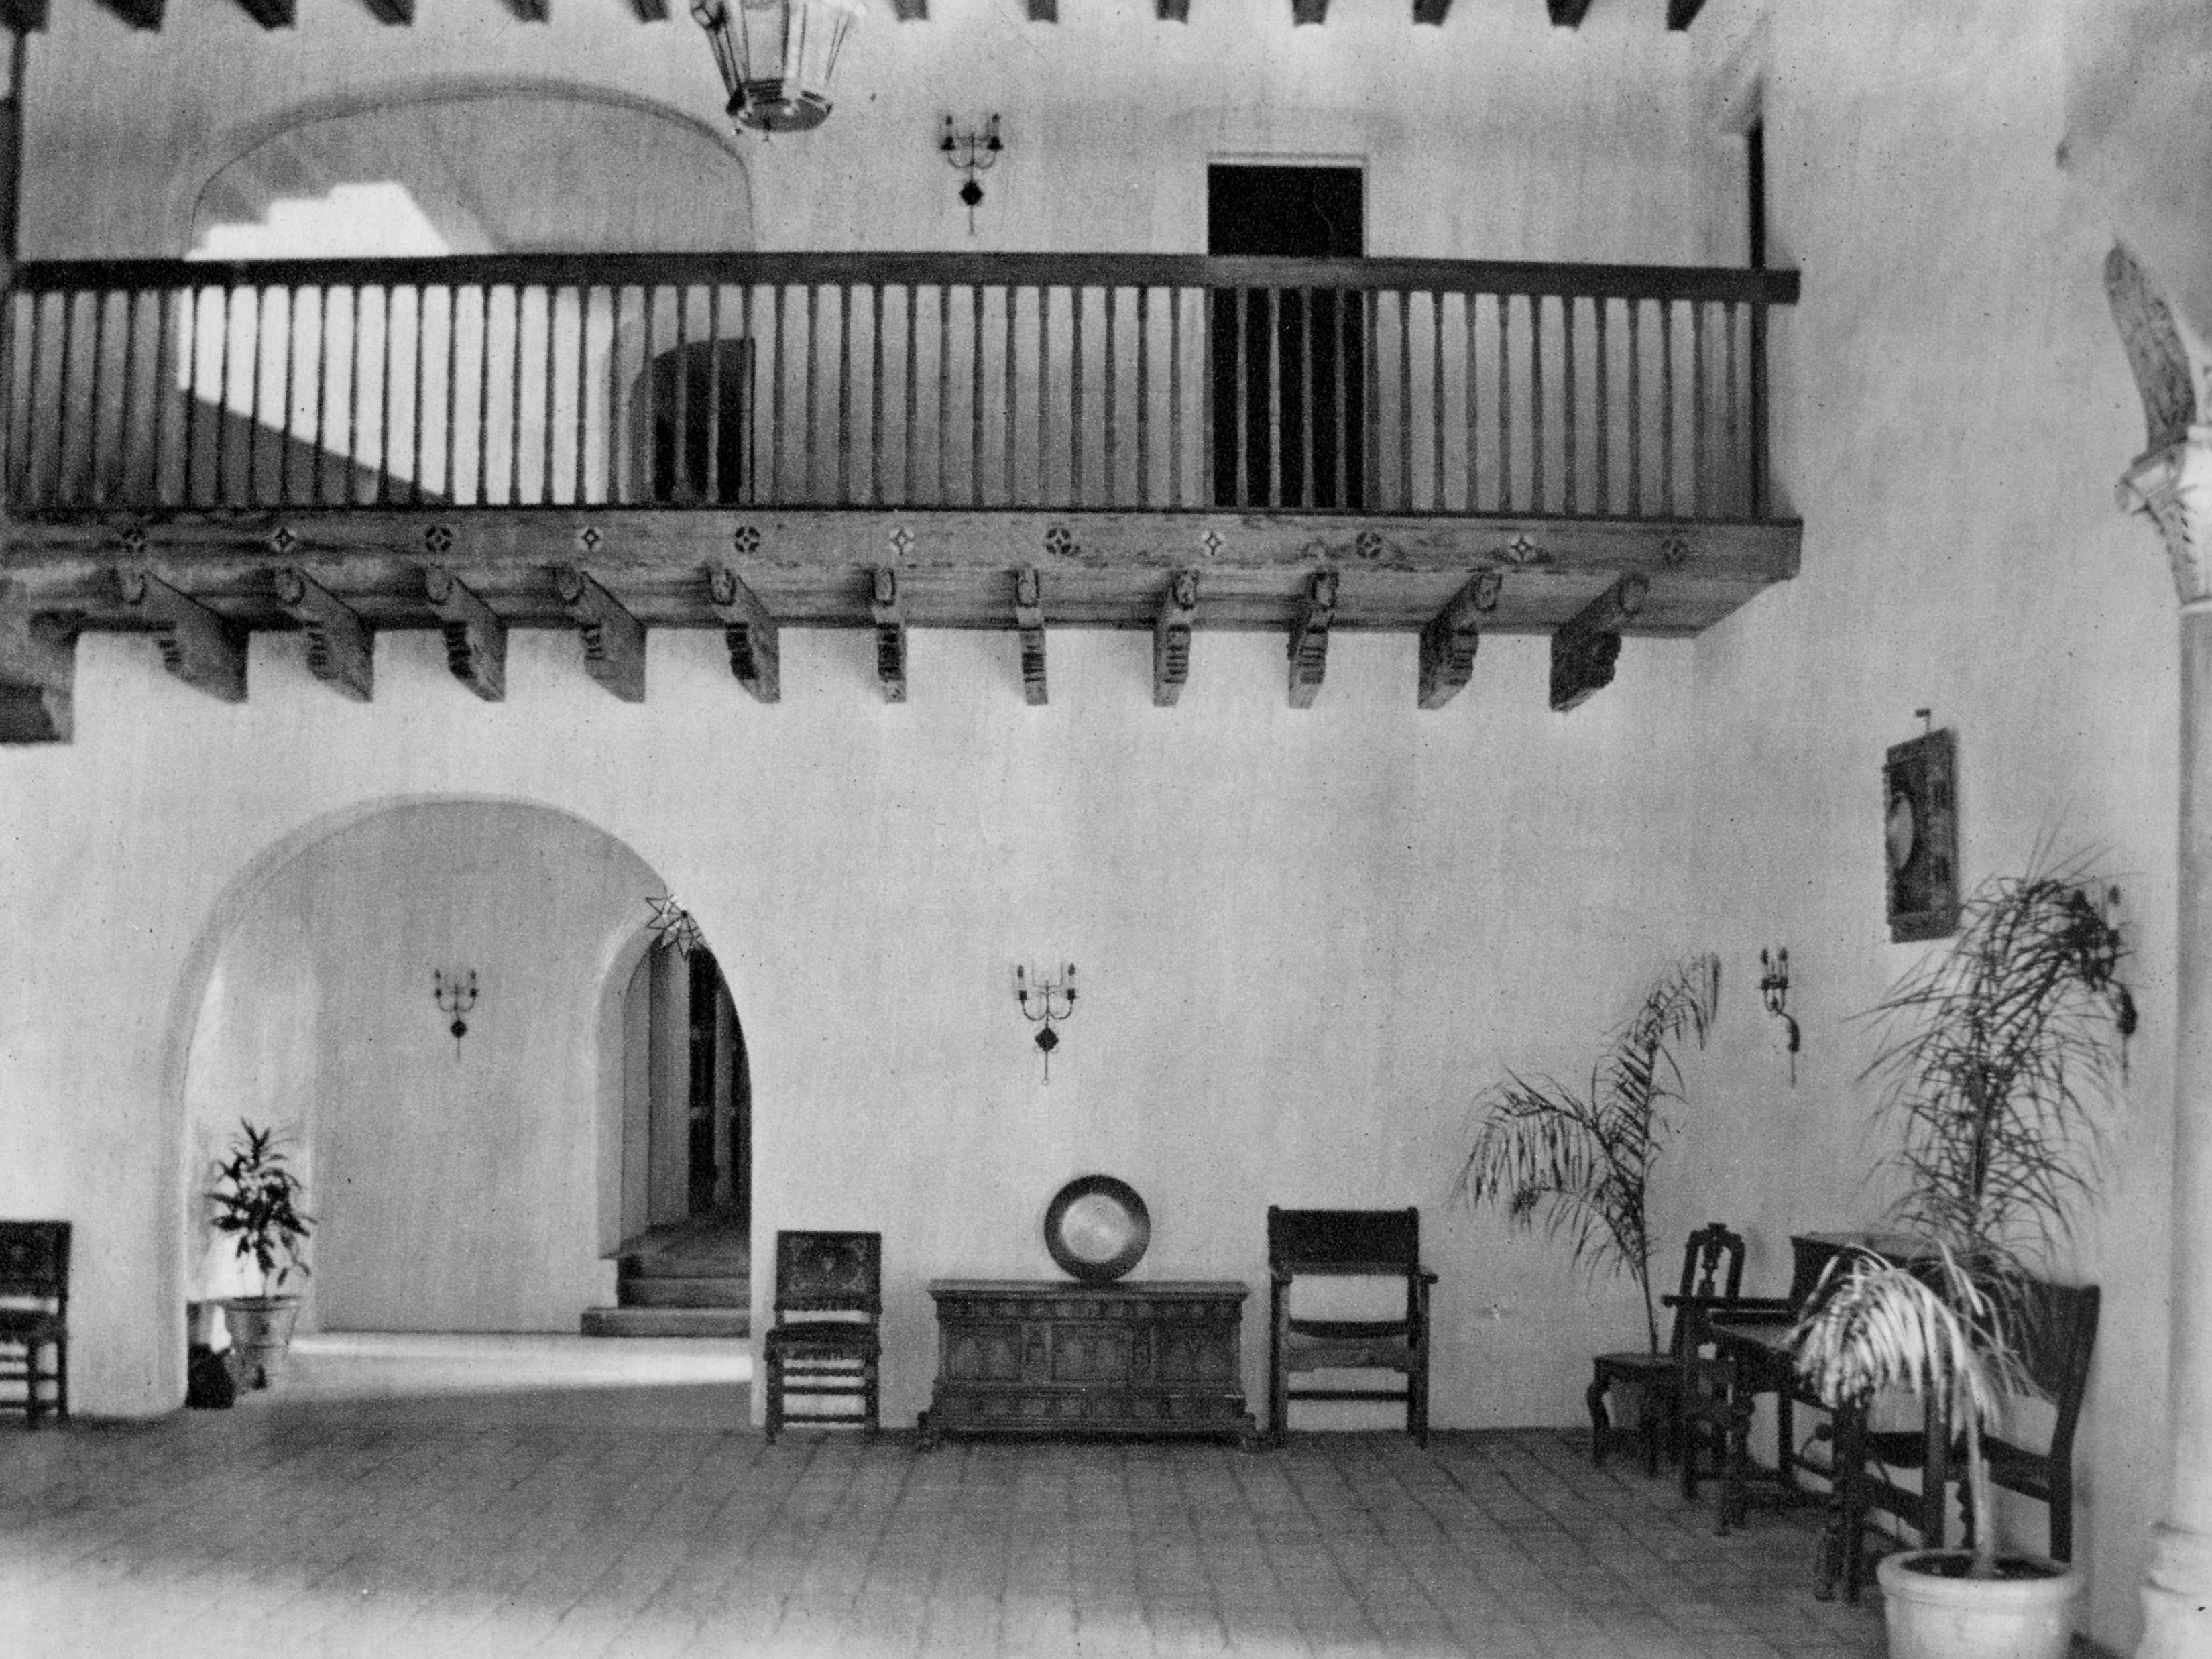 The original lobby of the Cloister Inn, which still stands today.